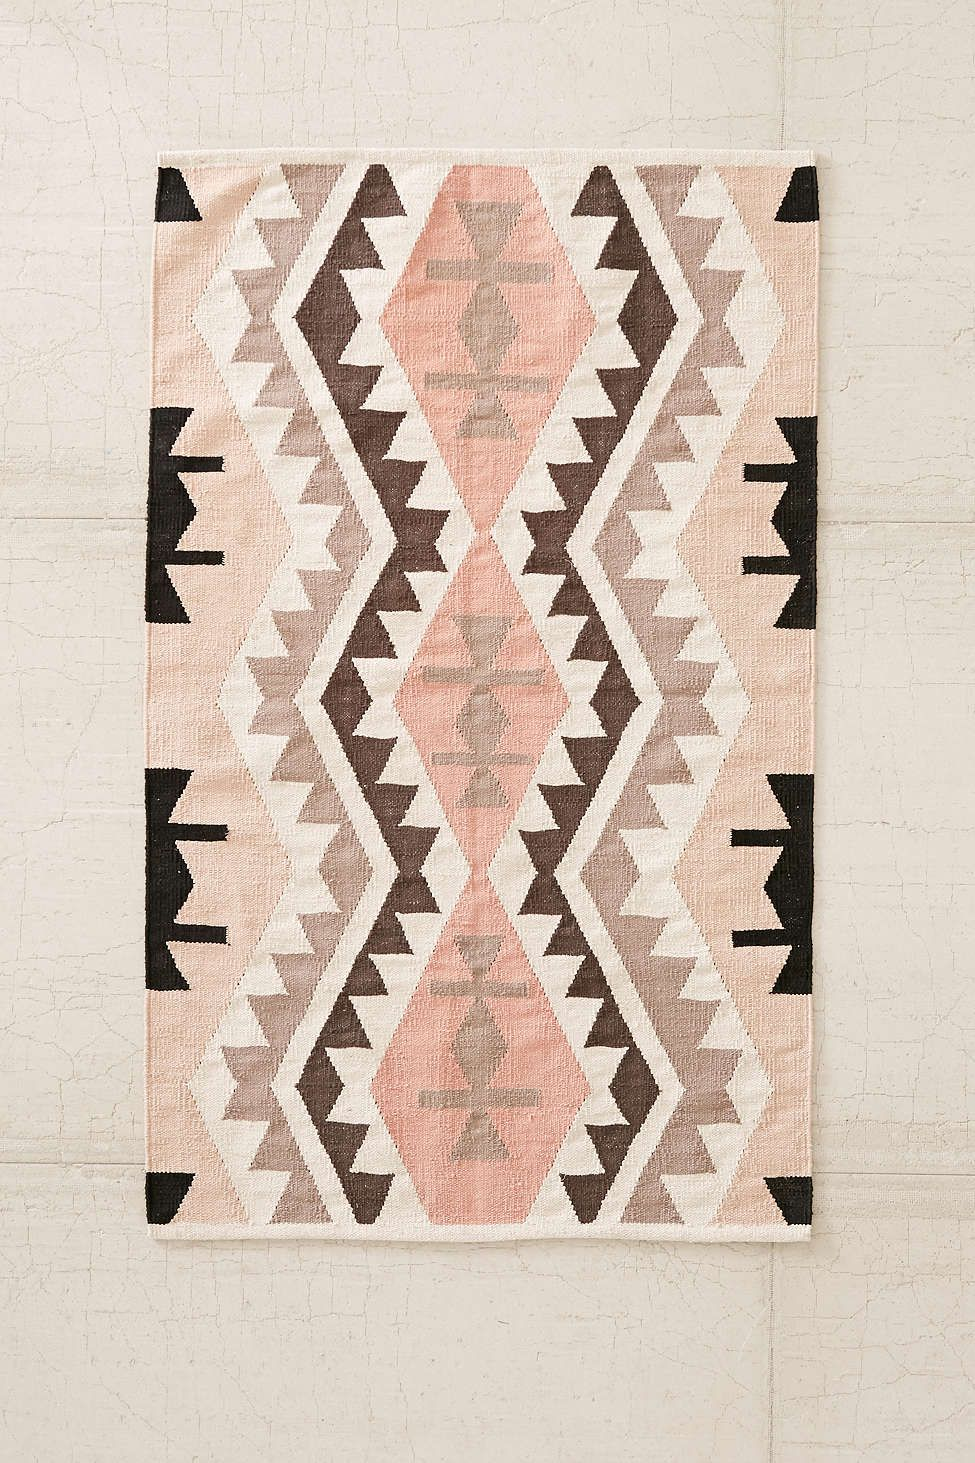 Plum & Bow Samarkand Kilm Rug  Urban Outfitters  #uohome Inspiration Southwestern Bathroom Rugs Design Inspiration